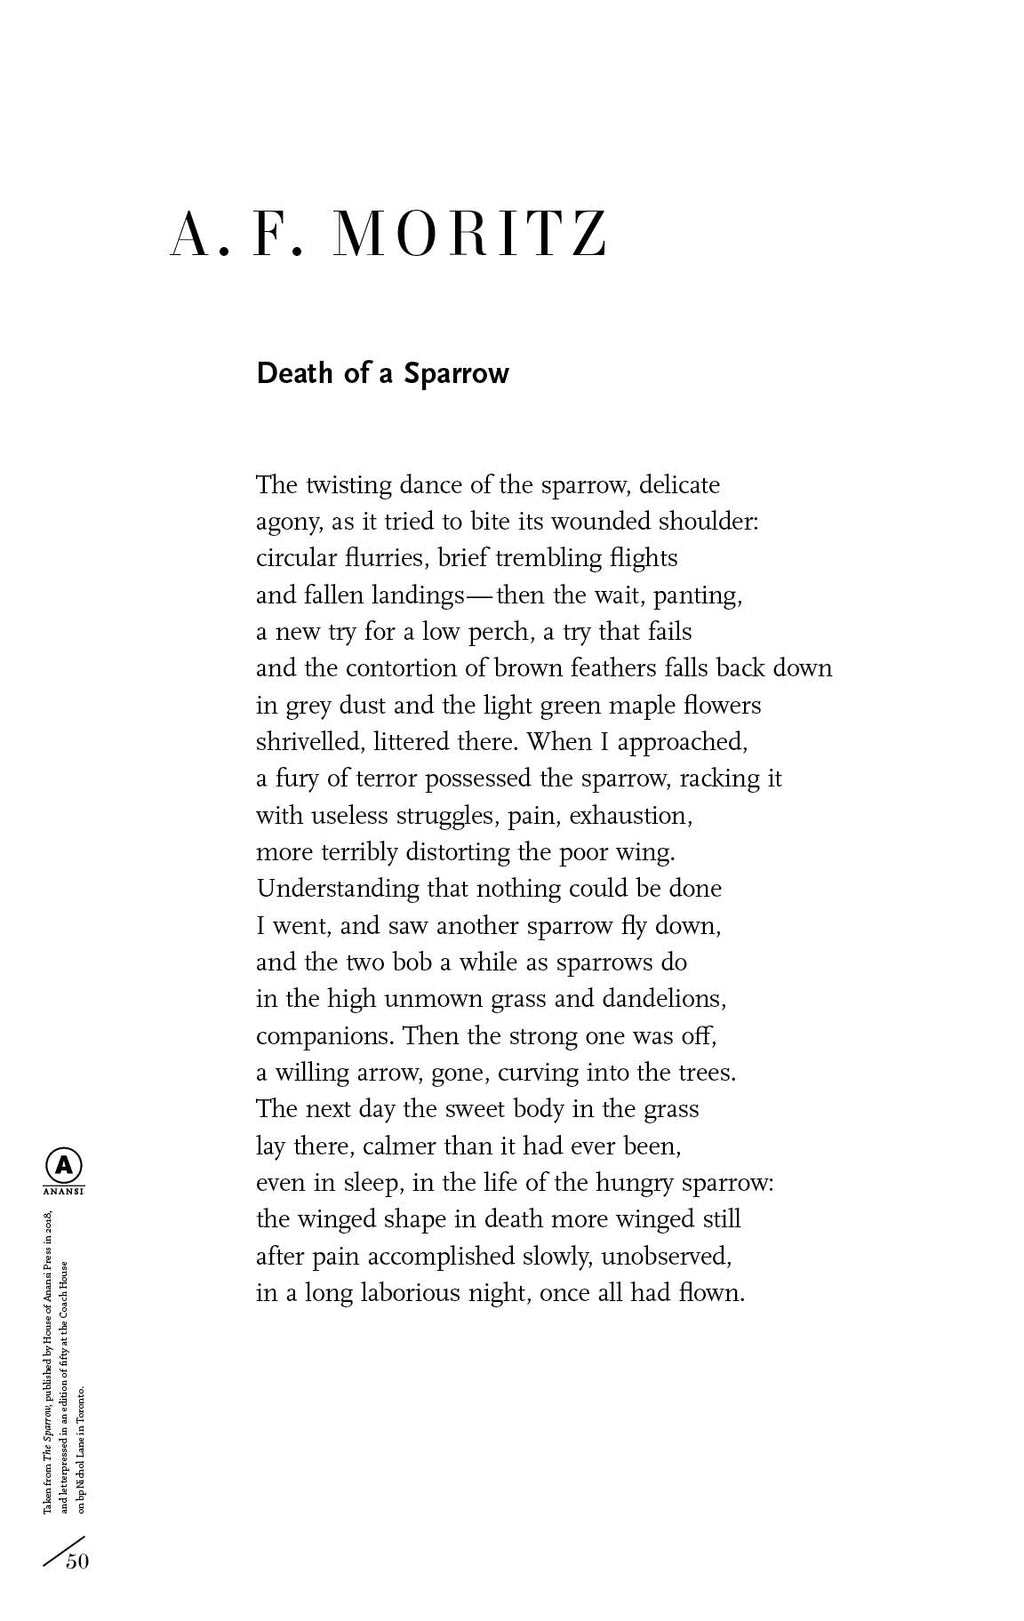 Death of a Sparrow by A. F. Moritz